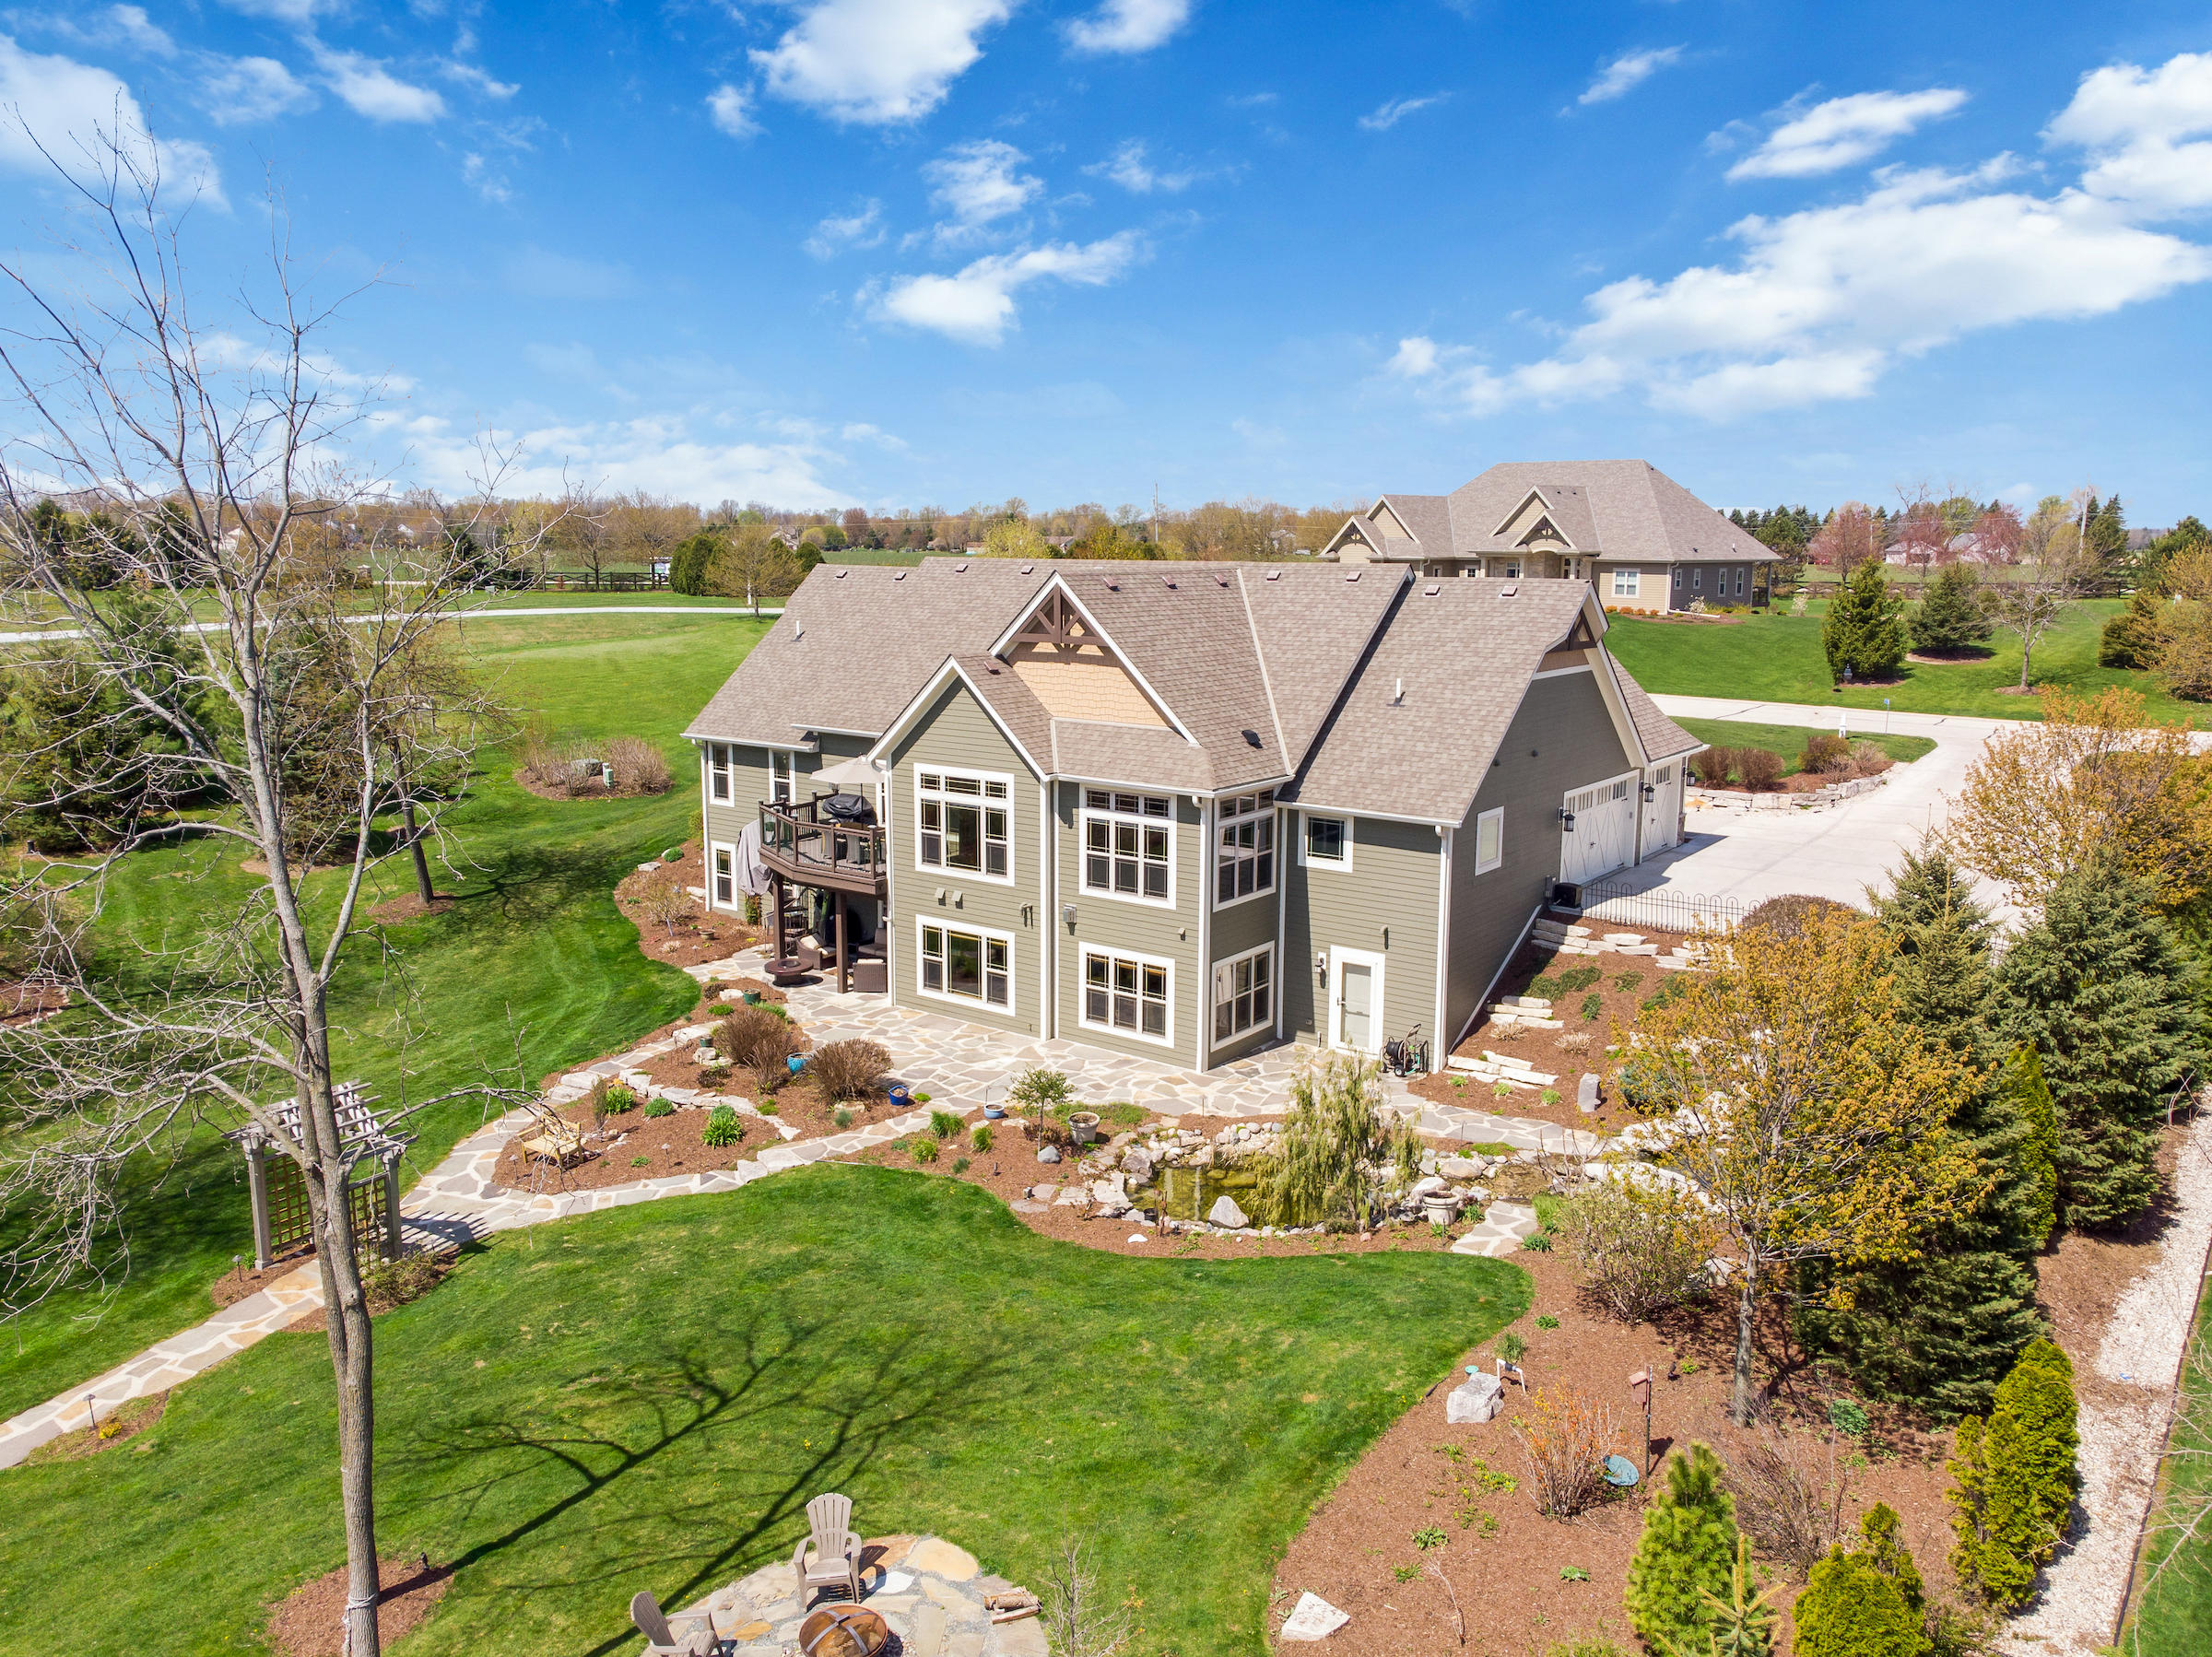 W346N6720 Shoreview Ct, Oconomowoc, Wisconsin 53066, 4 Bedrooms Bedrooms, 15 Rooms Rooms,3 BathroomsBathrooms,Single-Family,For Sale,Shoreview Ct,1688068